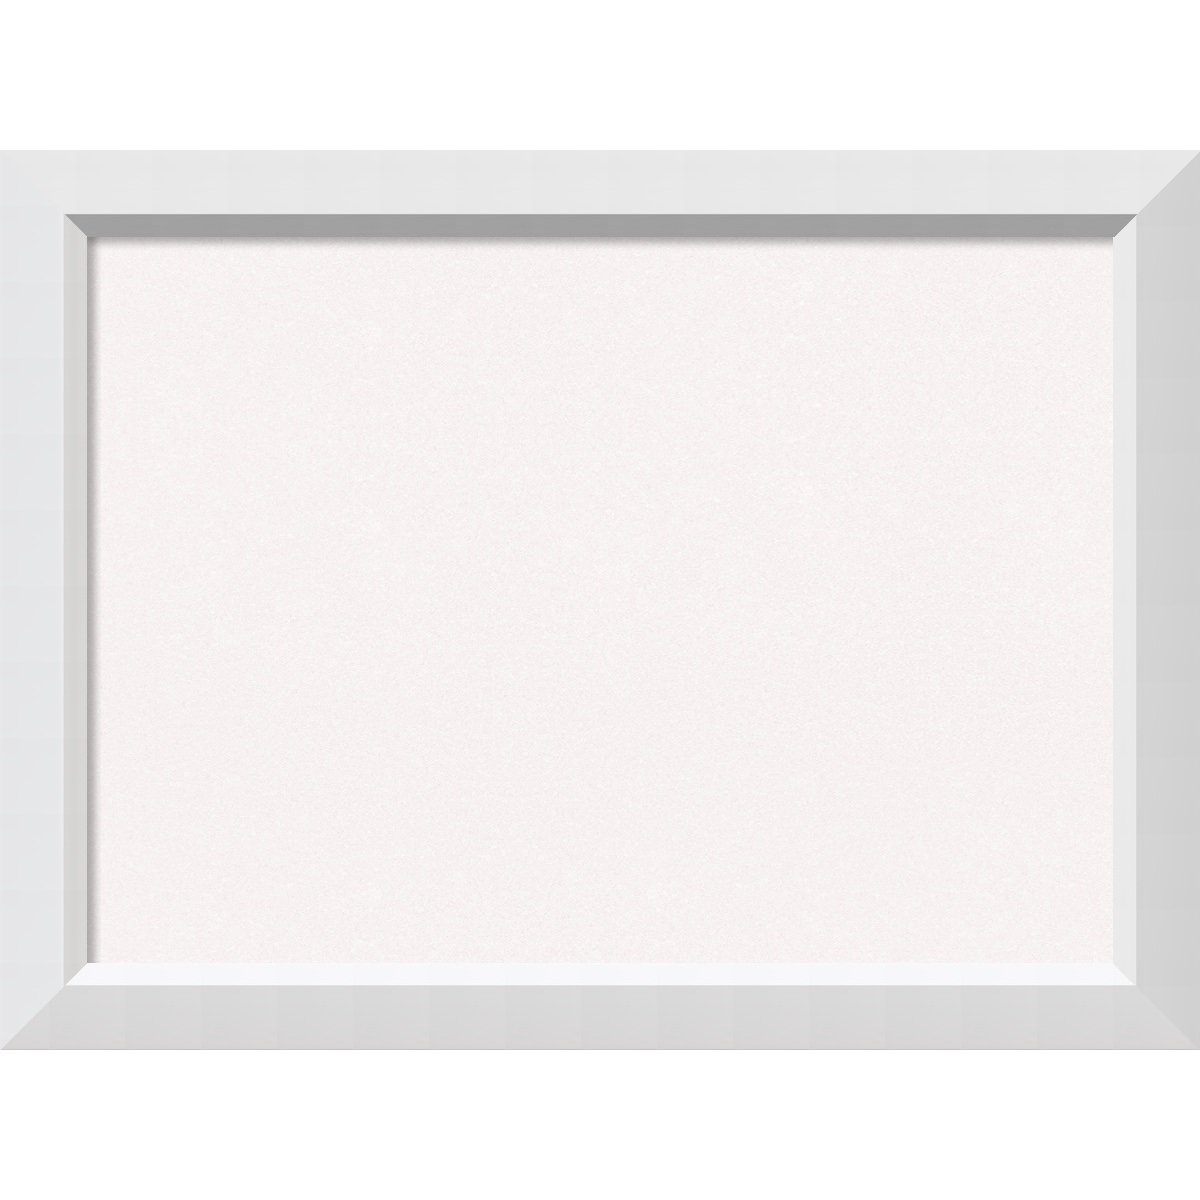 Amanti Art Framed Cork Board Blanco White: Outer Size 32 x 24, Large